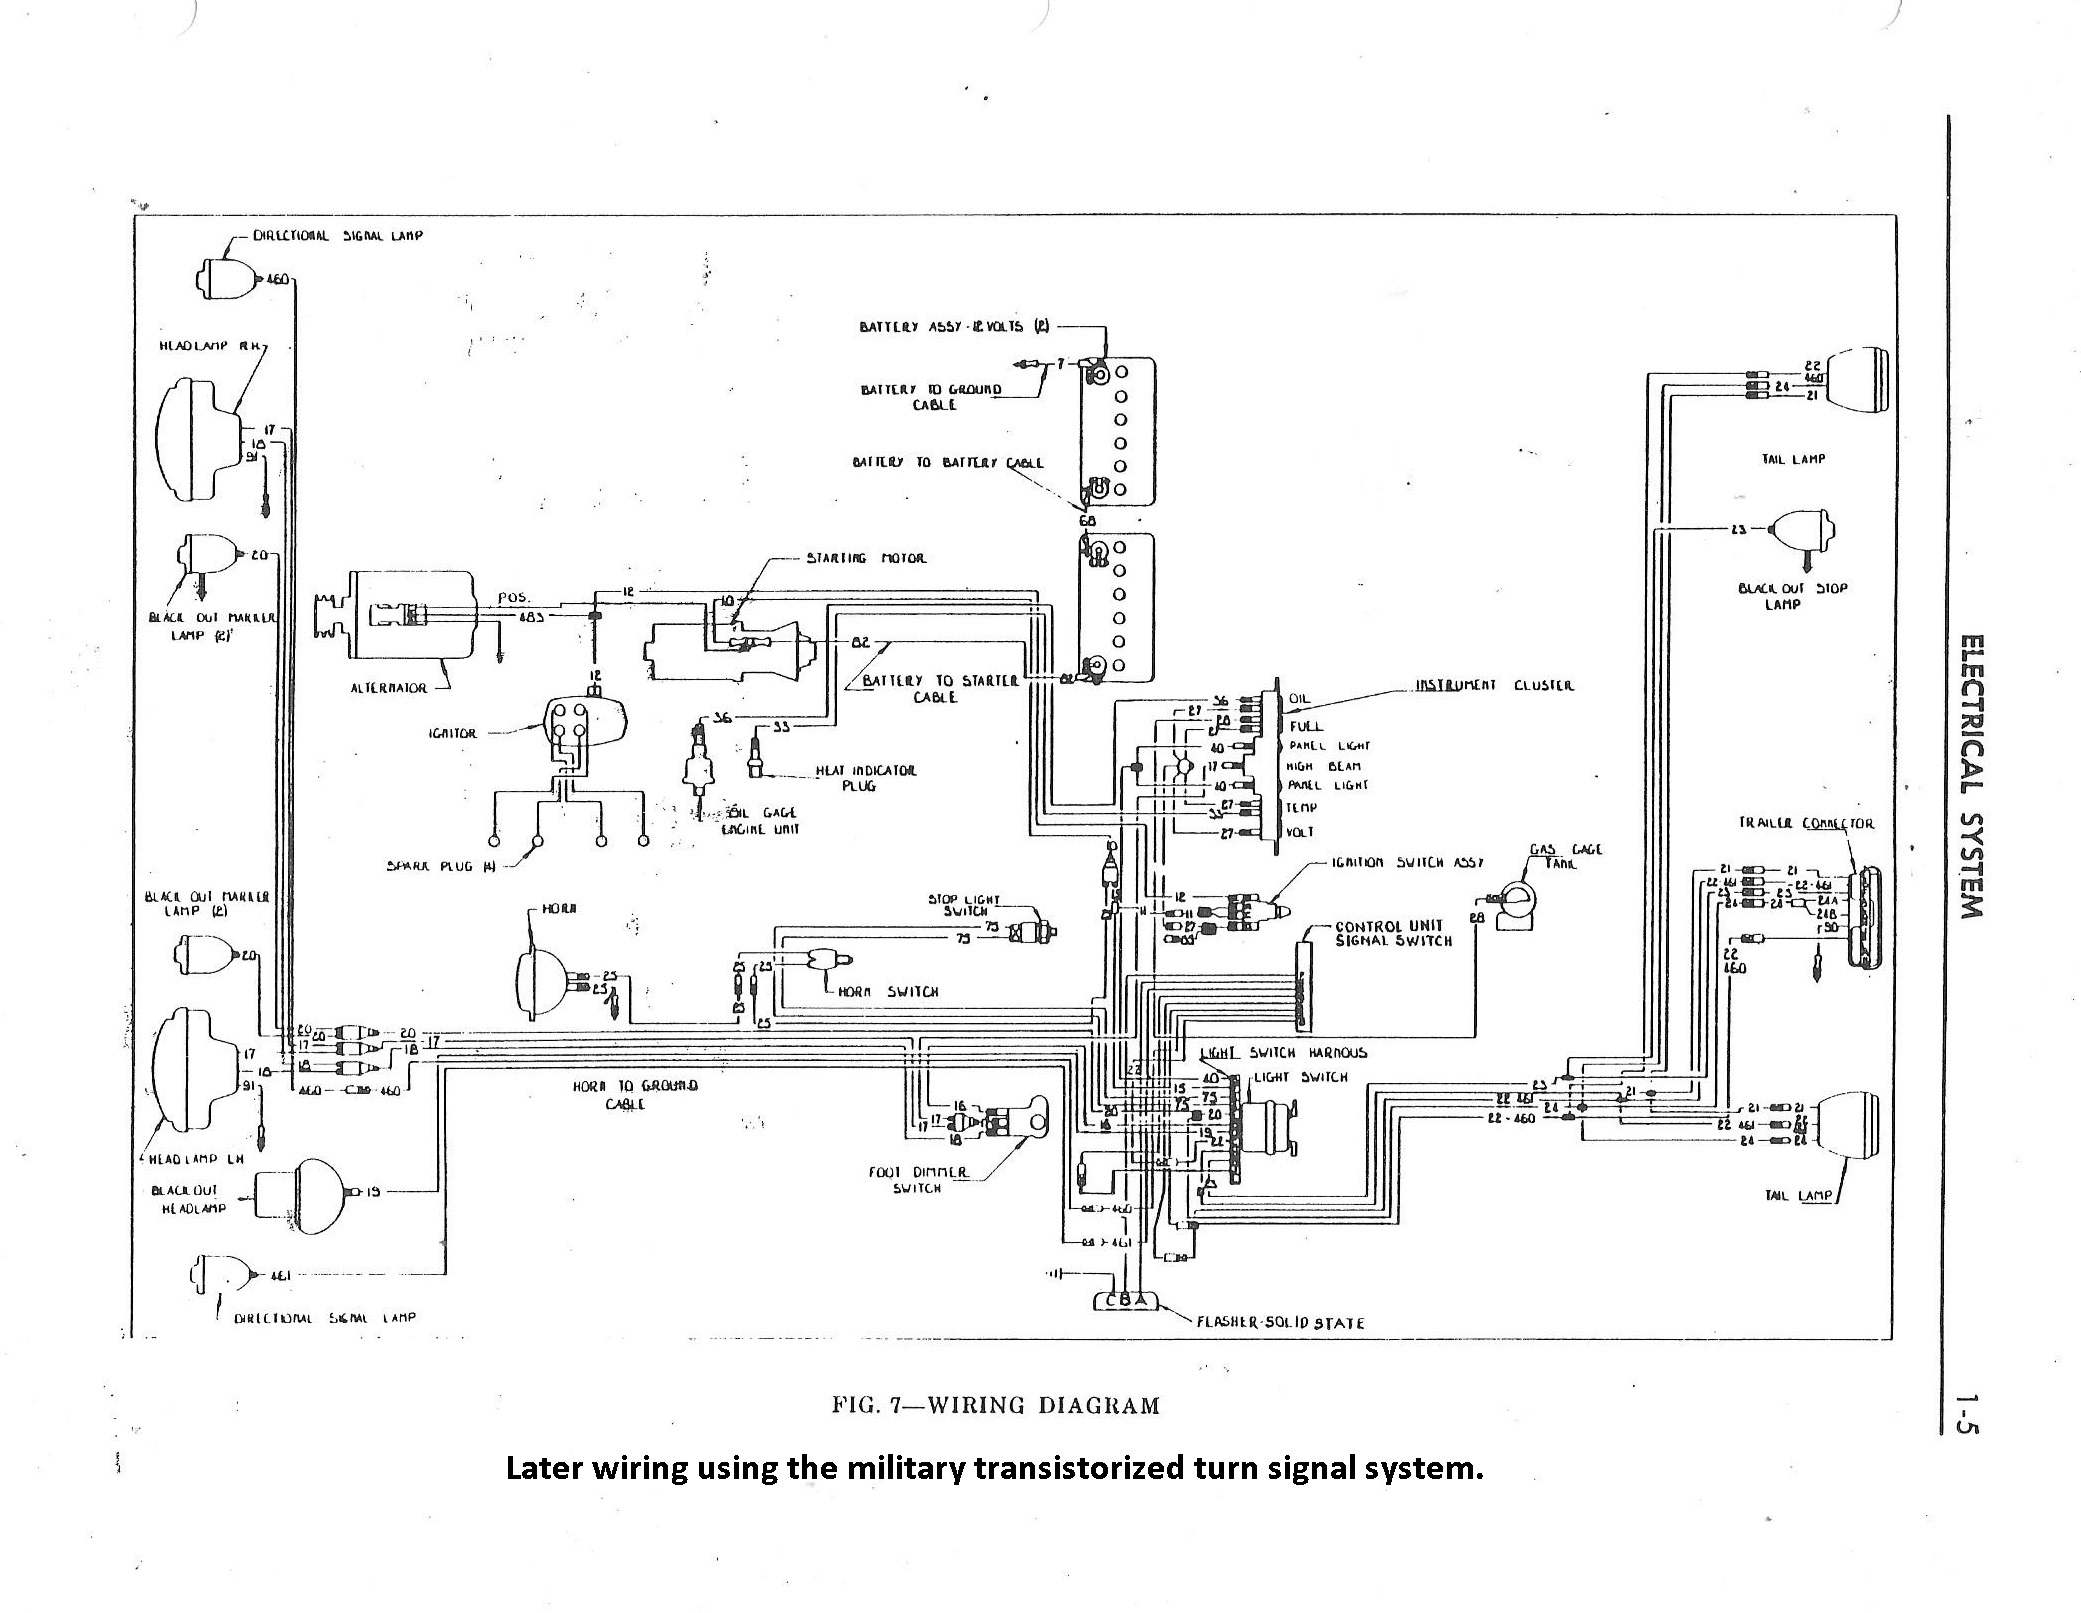 Cj2a Wiring Harness Diagram Library. M38 Wiring Diagram 18 S Jeep Cj2a. Wiring. Cj2a Wiring Harness Diagram At Scoala.co